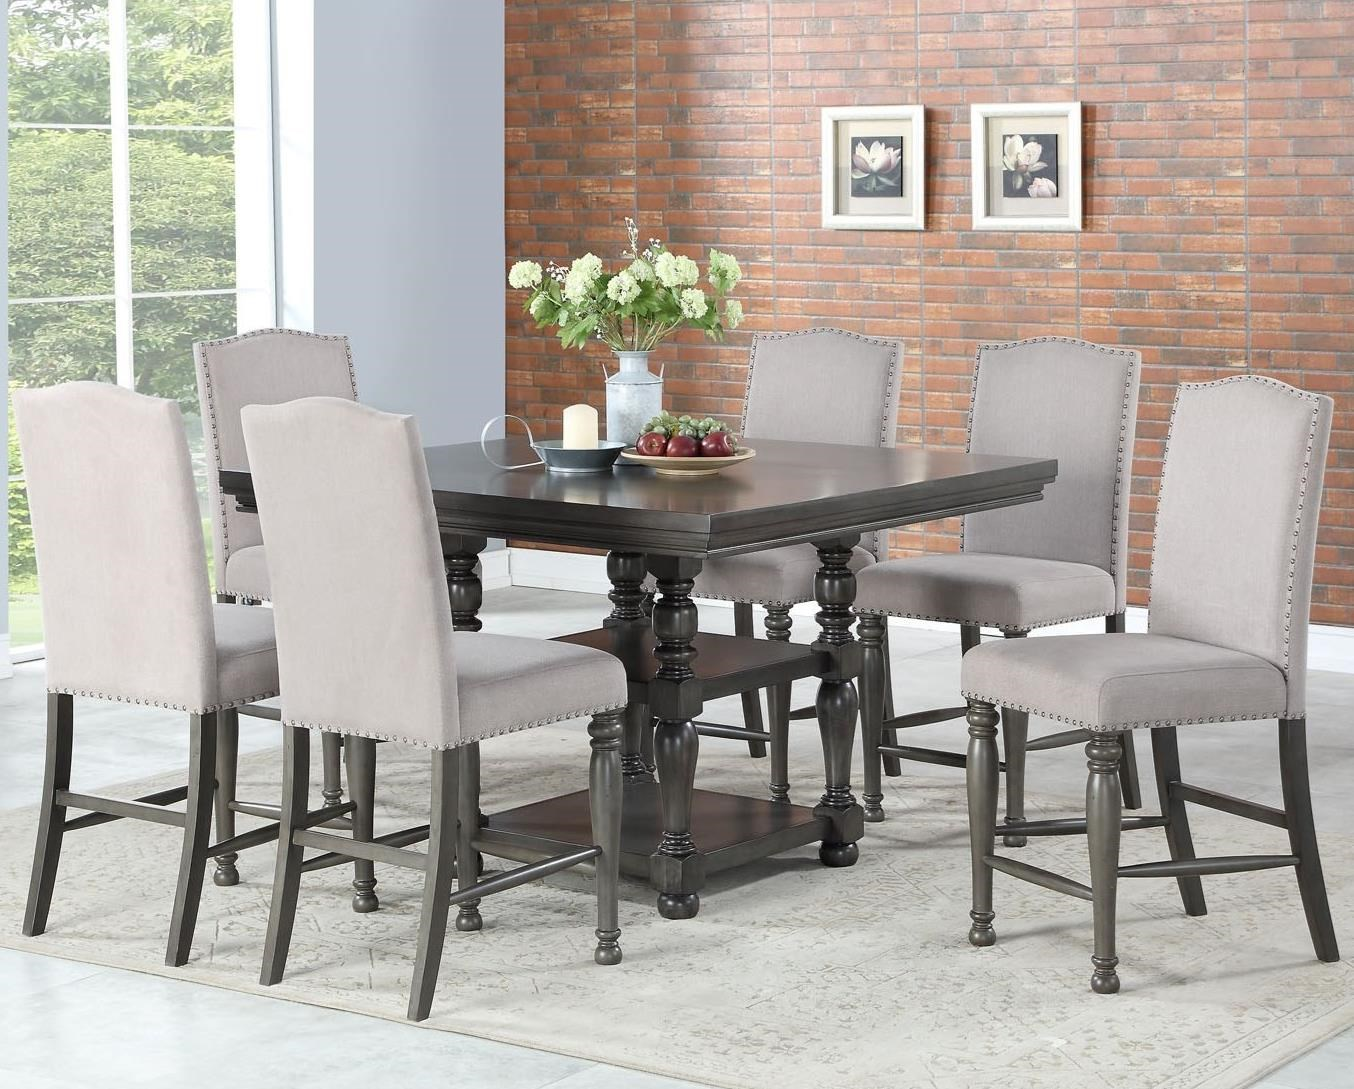 Caswell 7 Pc Counter Dining Set by Steve Silver at Walker's Furniture